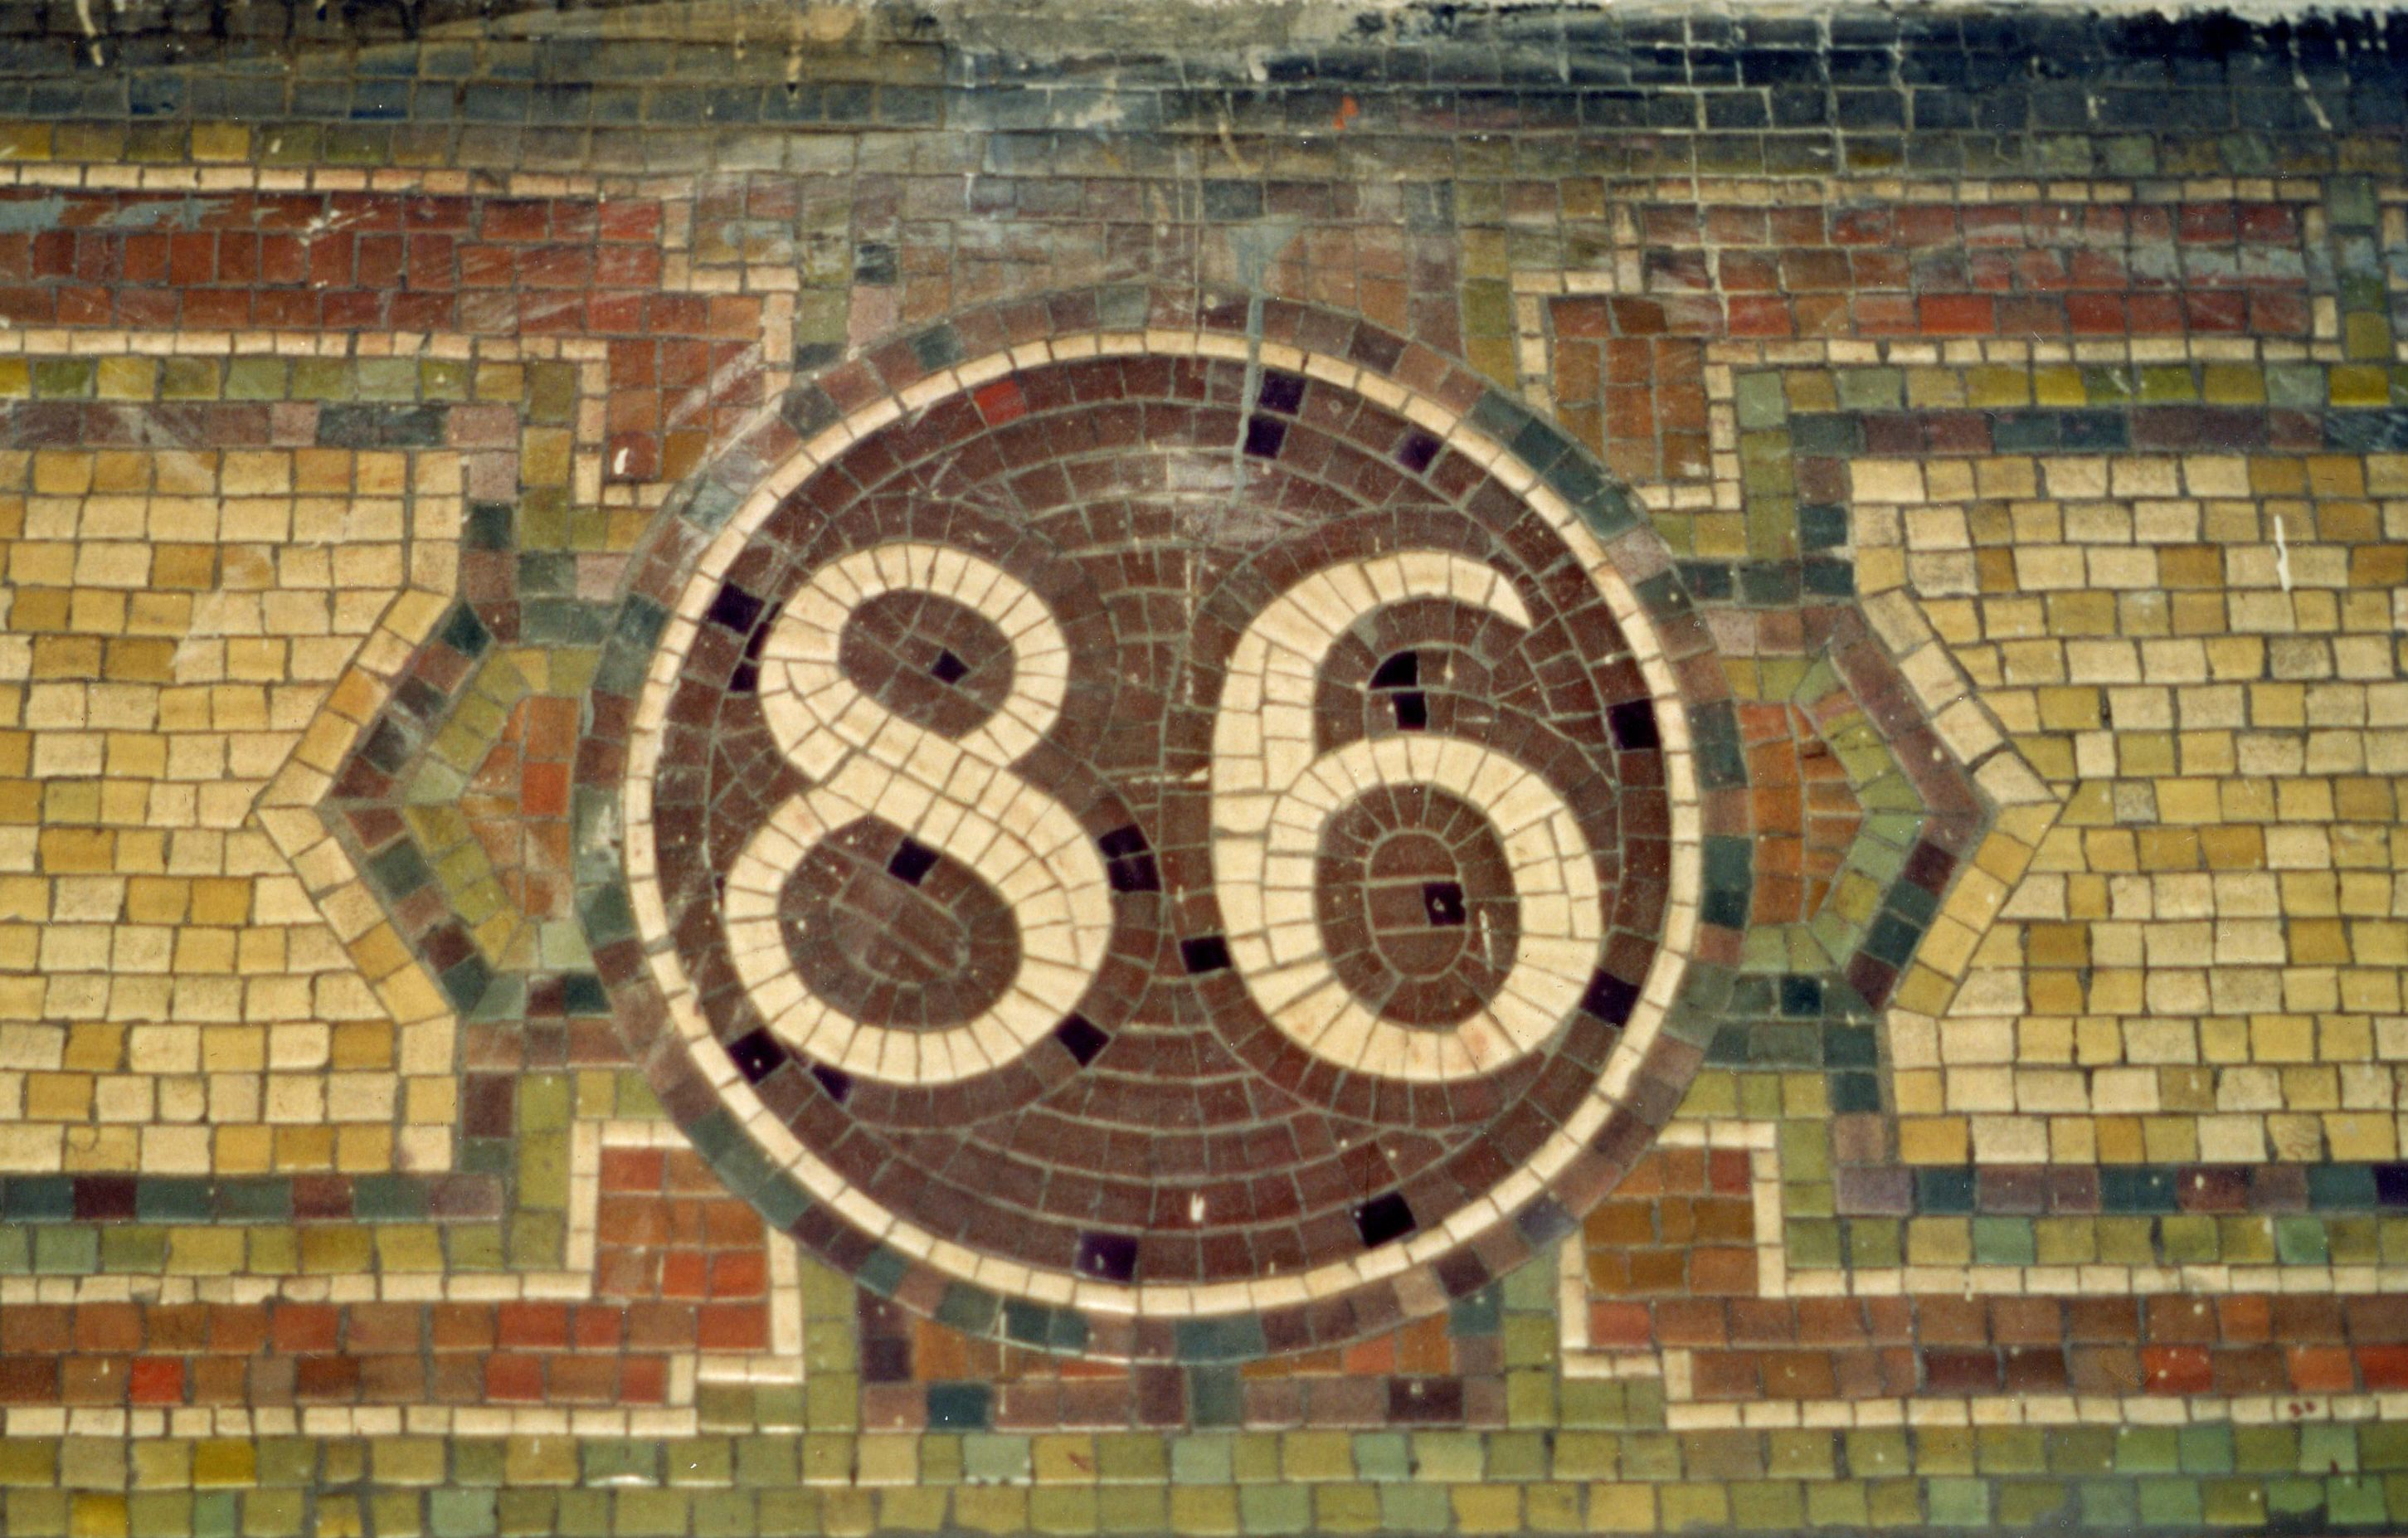 86th Street Station New York subway mosaic Manhattan